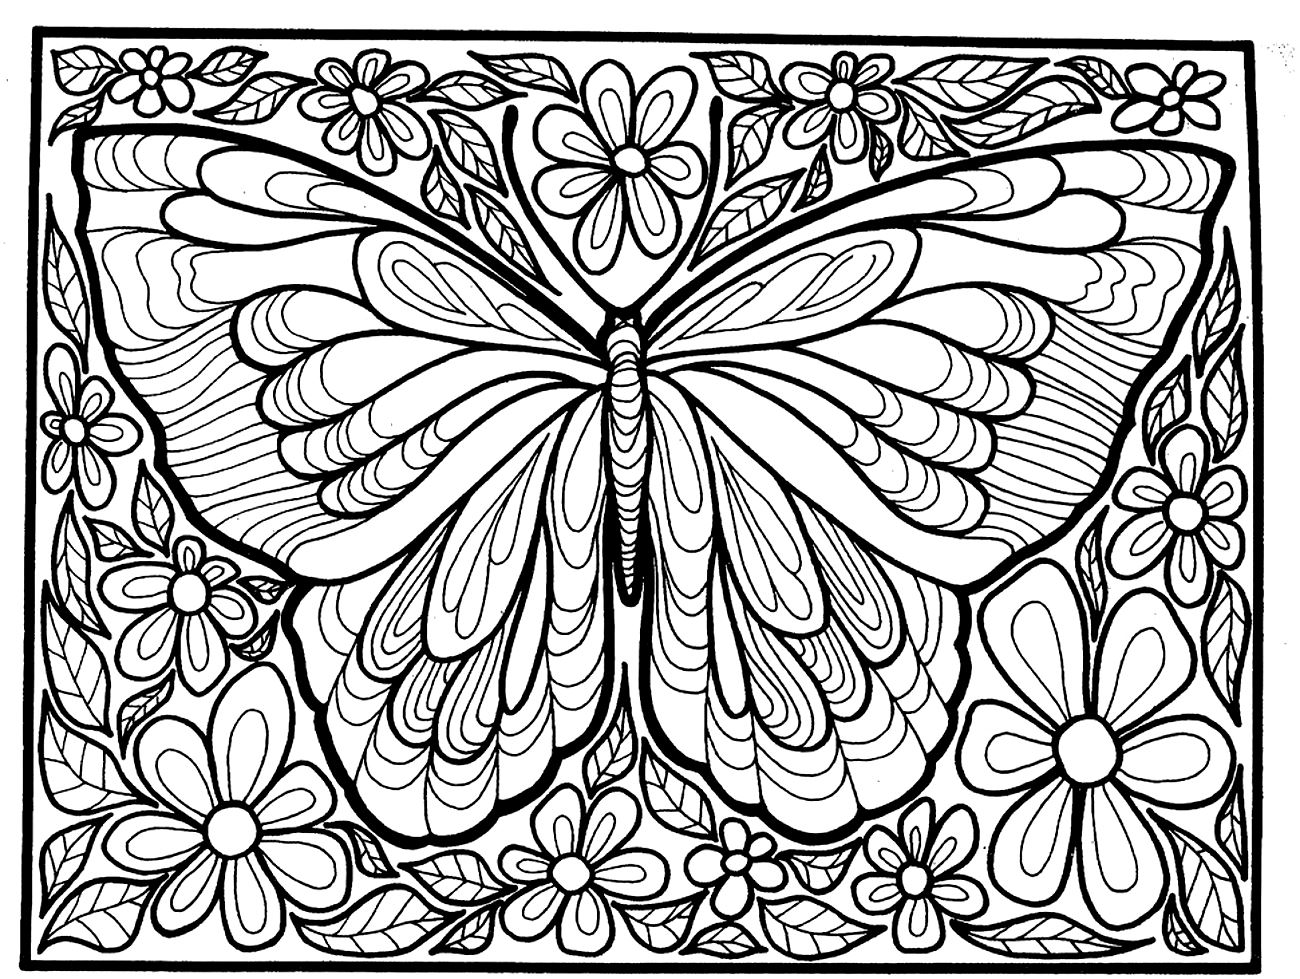 Big butterfly - Butterflies & insects Adult Coloring Pages - photo#38